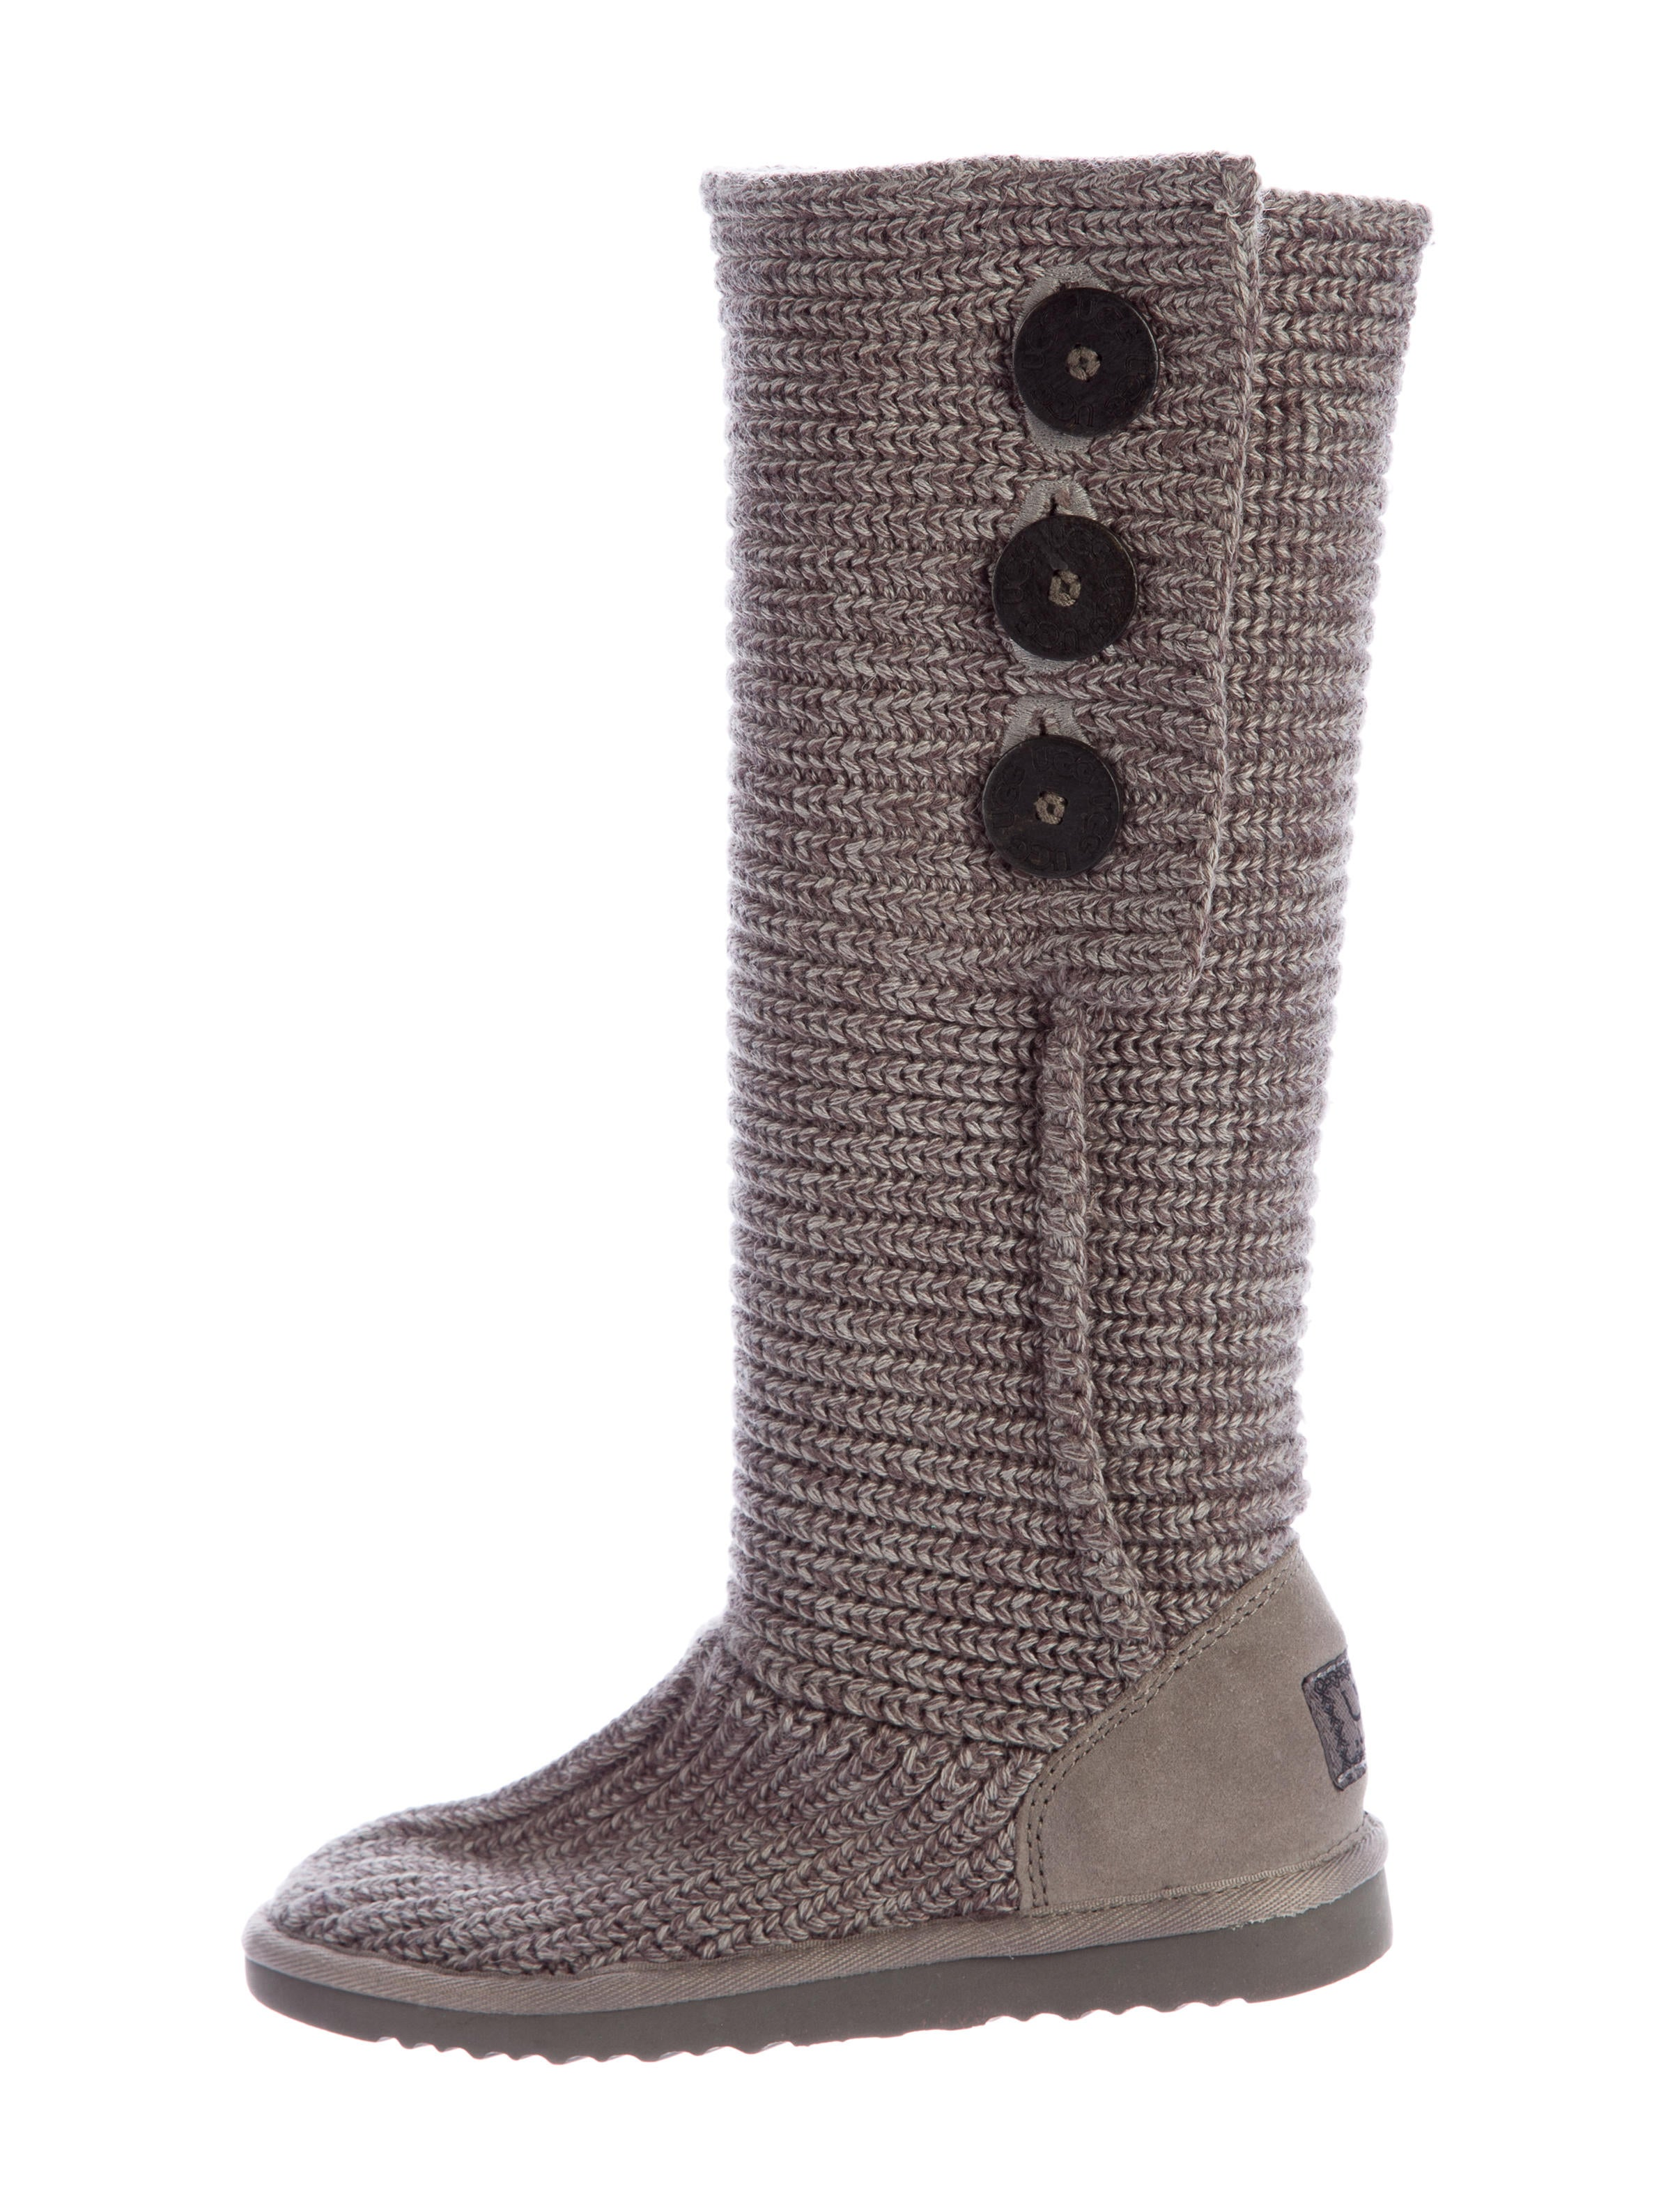 ugg australia knit knee high boots shoes wuugg20981